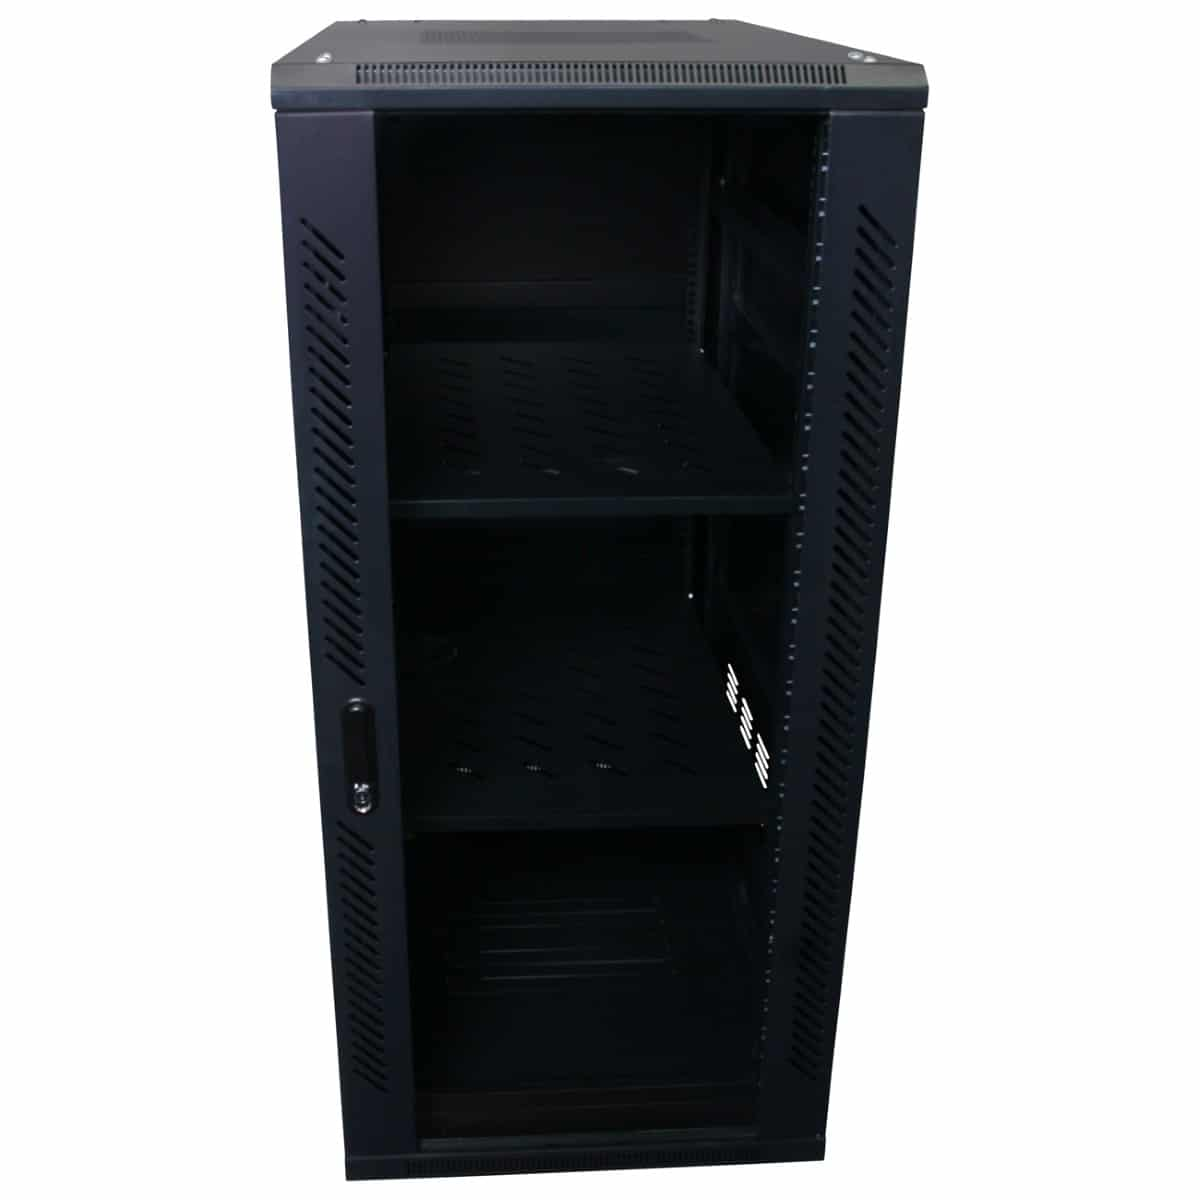 27RU 1000mm Deep X 600mm Wide Rack Cabinet